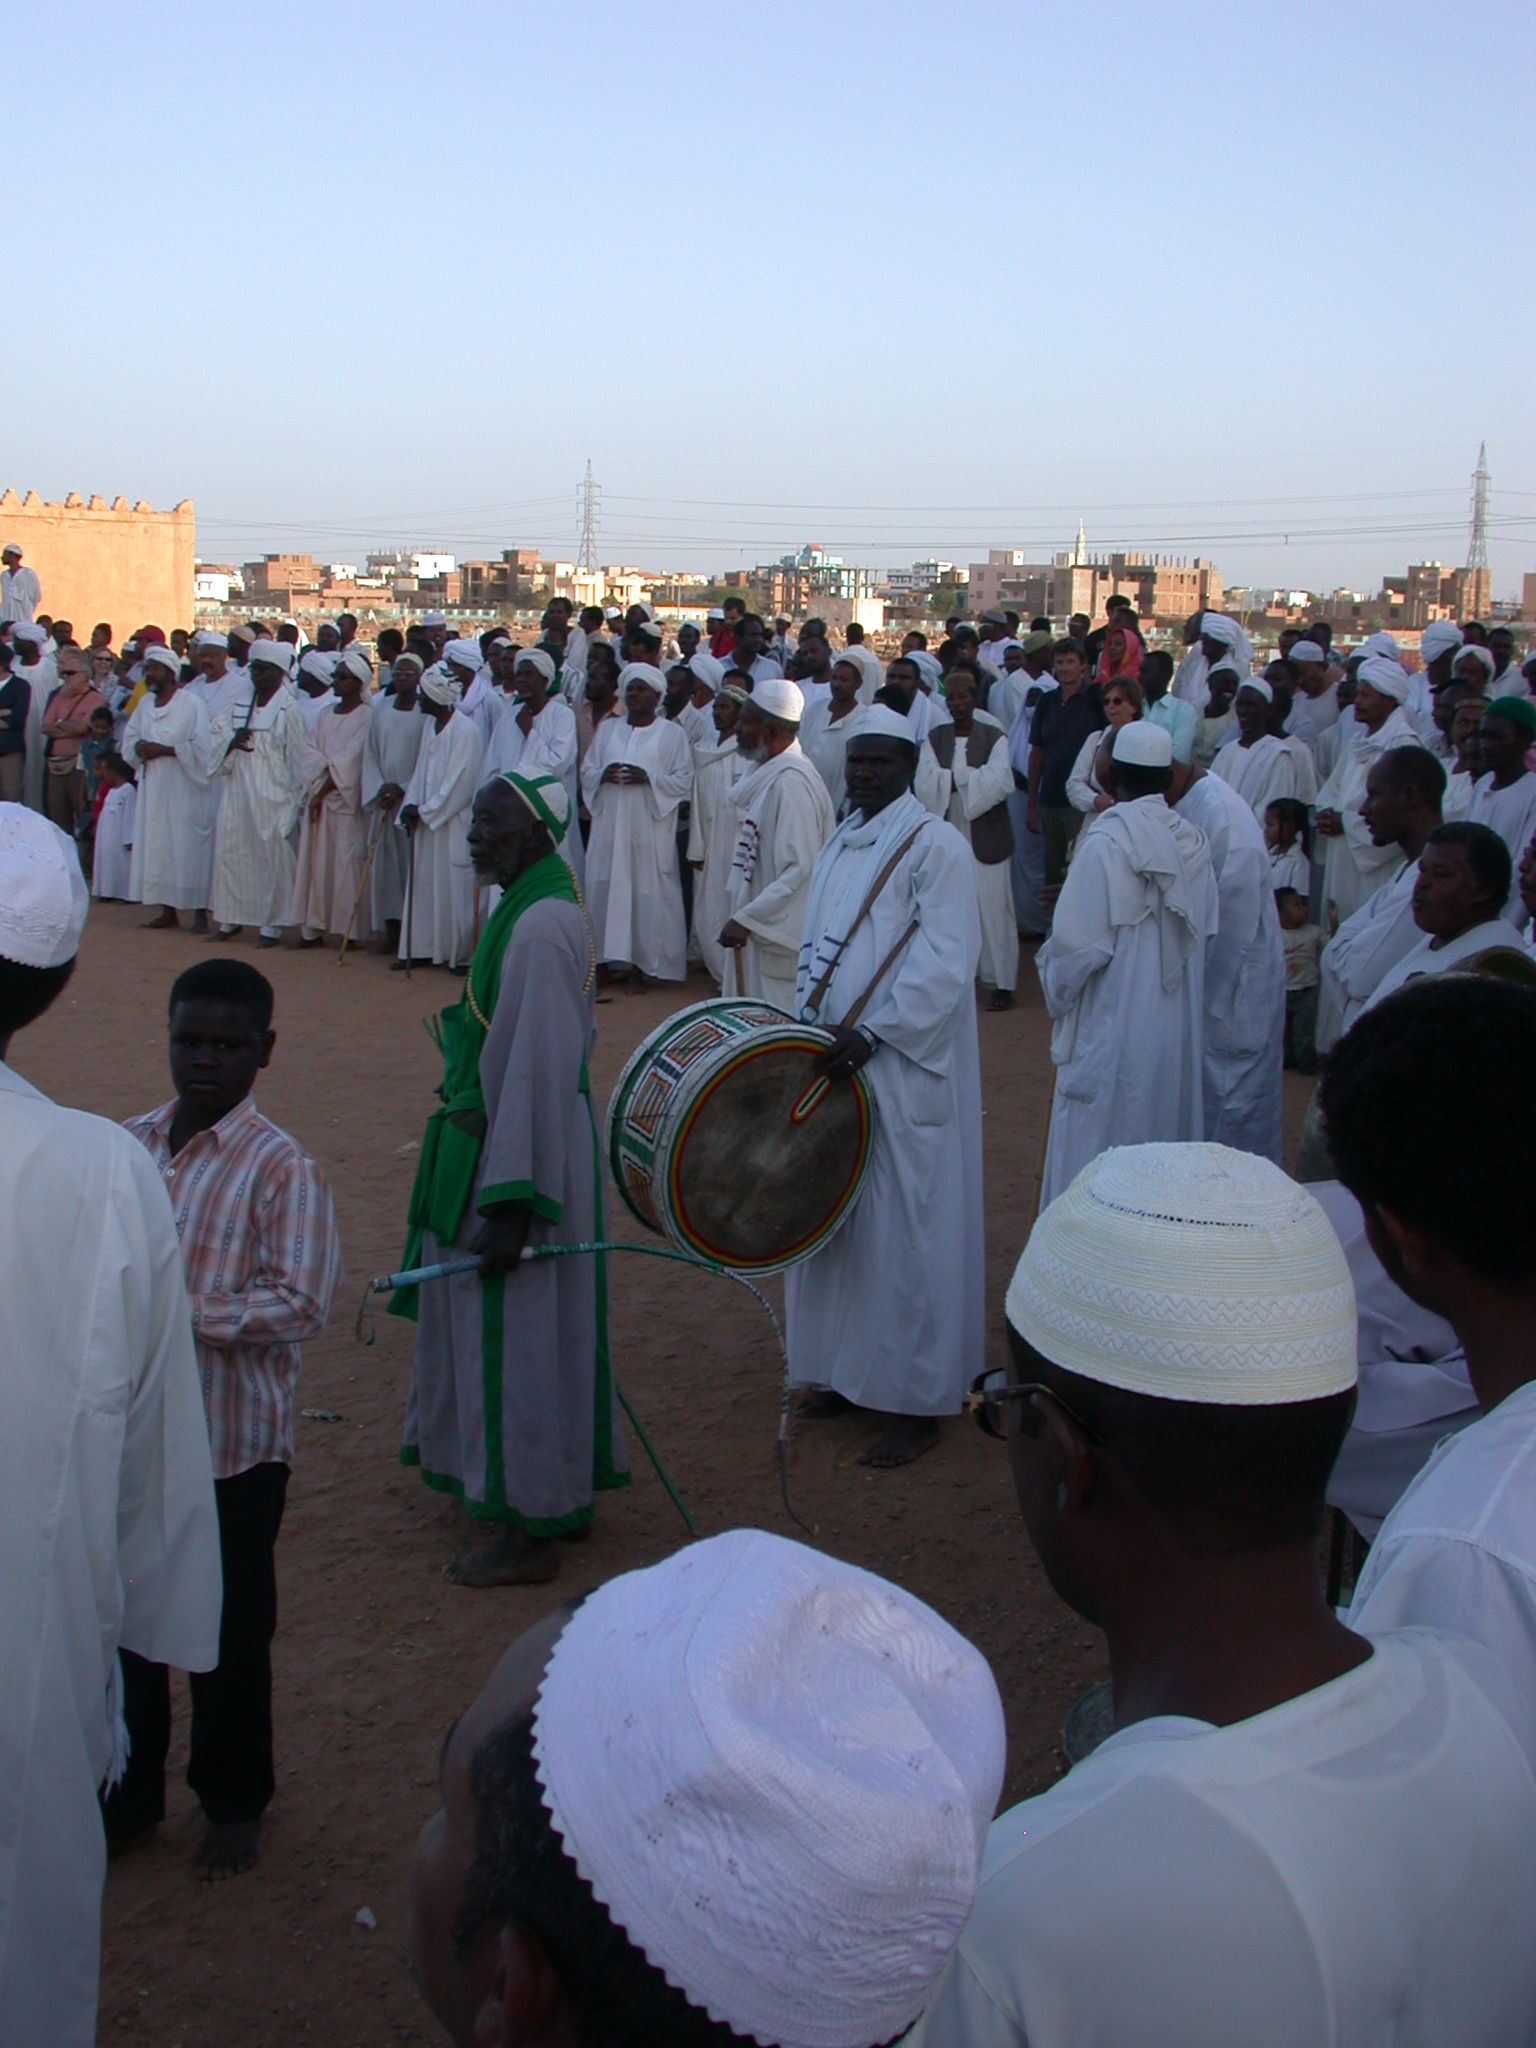 Sufis at Sufi Dancing Site, Omdurman, Sudan